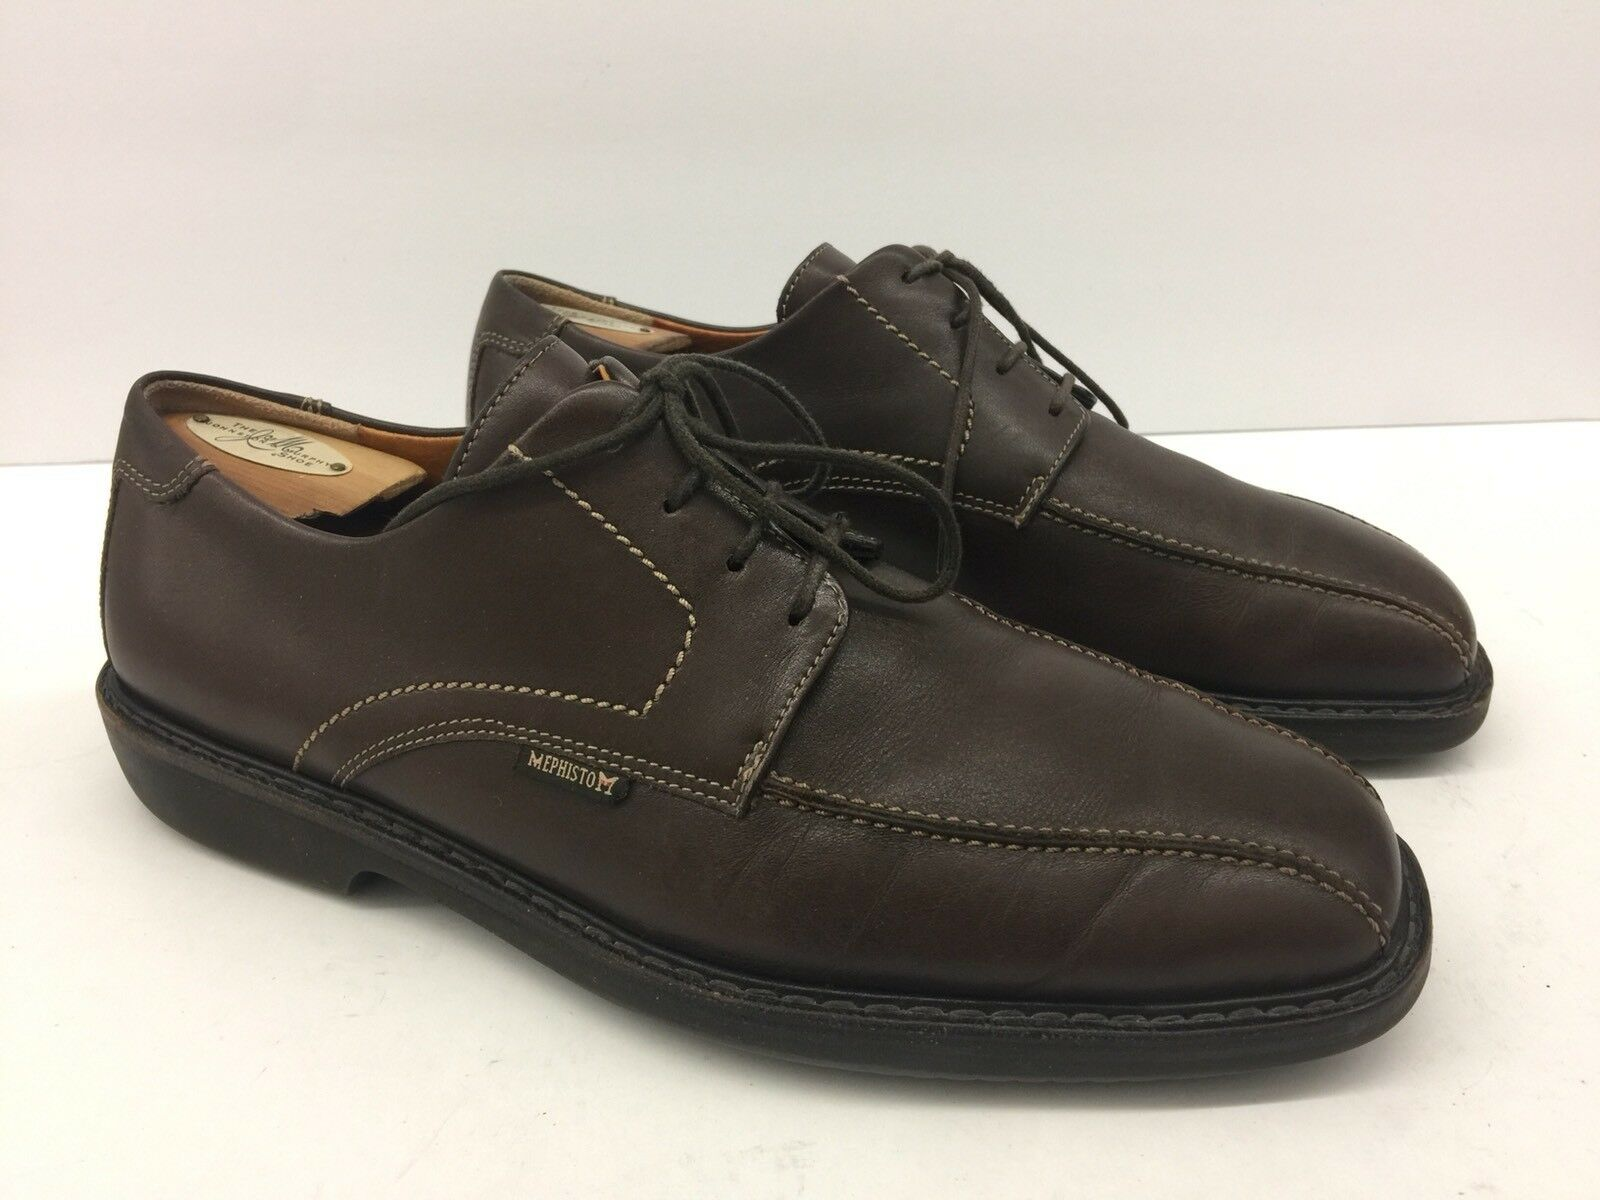 440 MEPHISTO GoodYear Air-Relax Brown Shock Absorber shoes Mens Sz 9.5 us